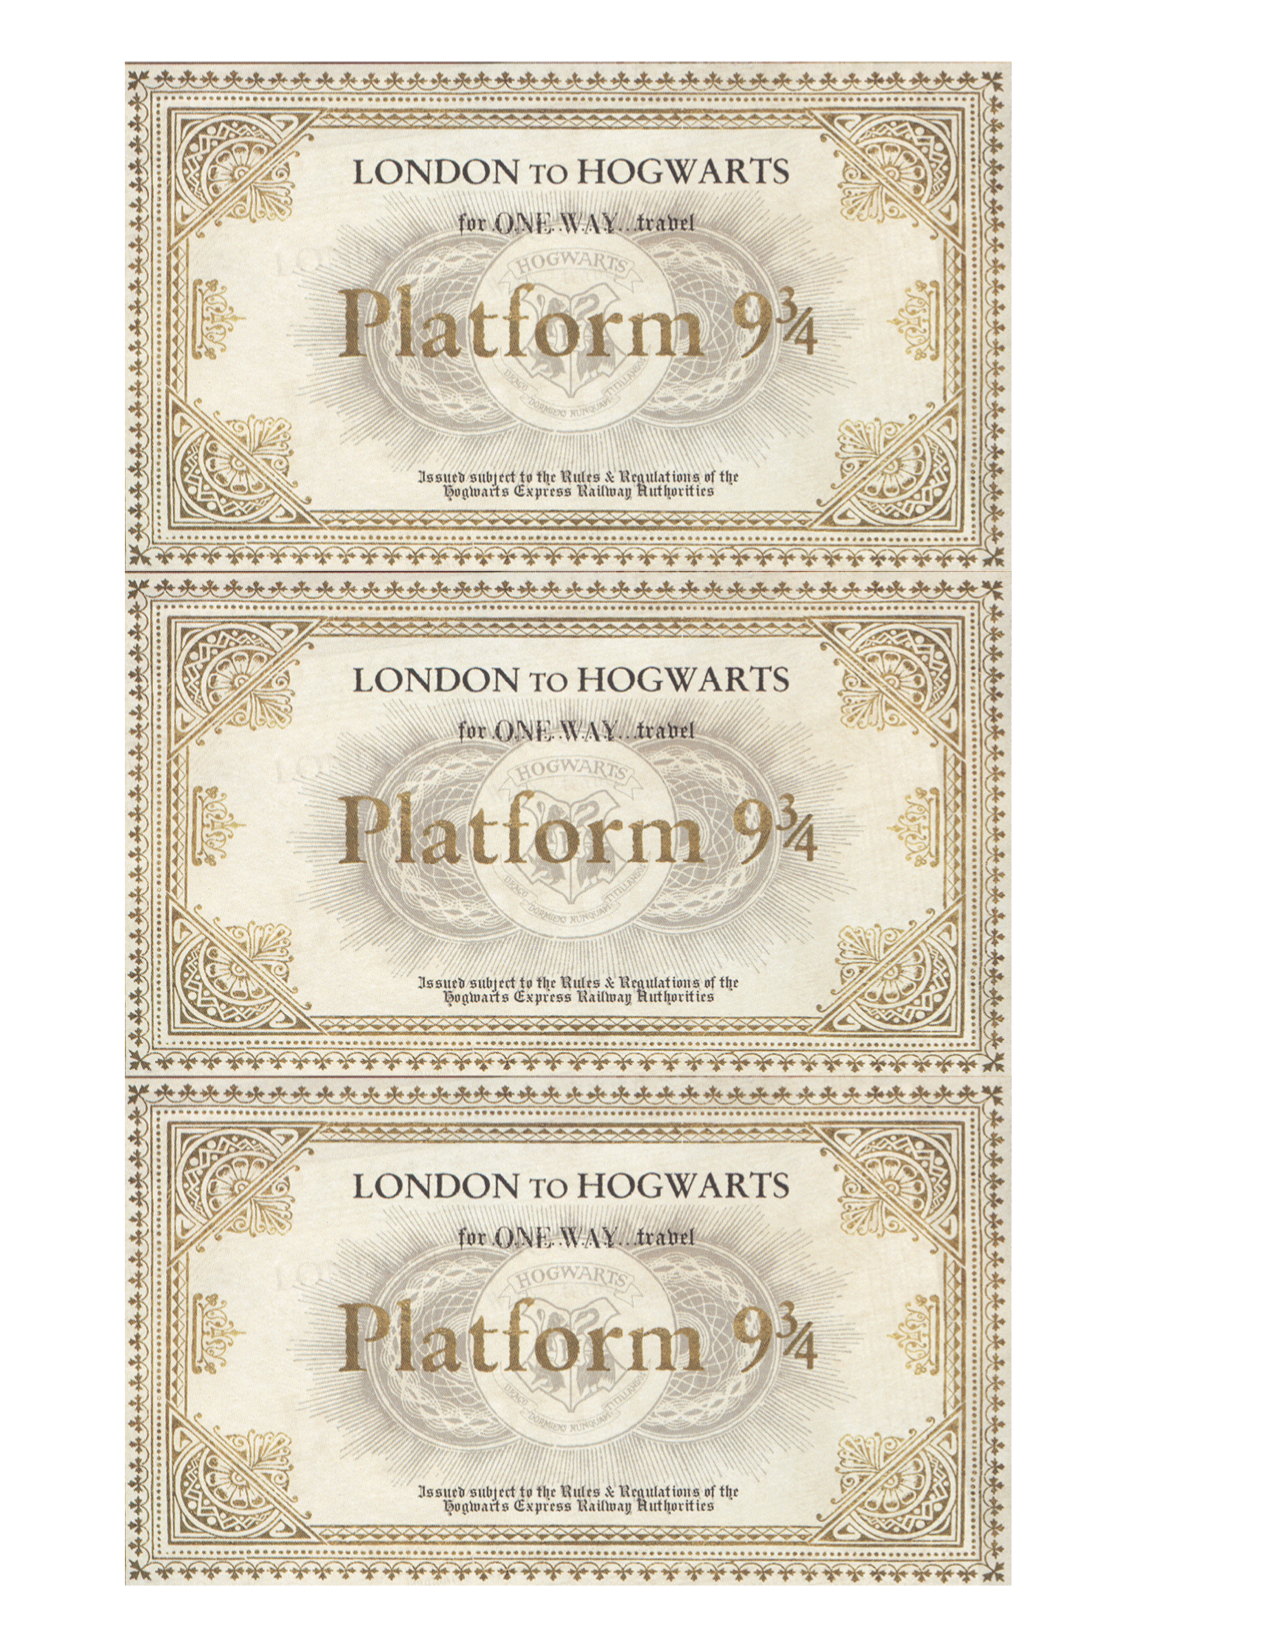 Harry potter hogwarts acceptance letter paper trail design print the platform 9 34 ticket here it looks really nice in full color with the gold but if you have parchment paper and print black and white it looks spiritdancerdesigns Choice Image